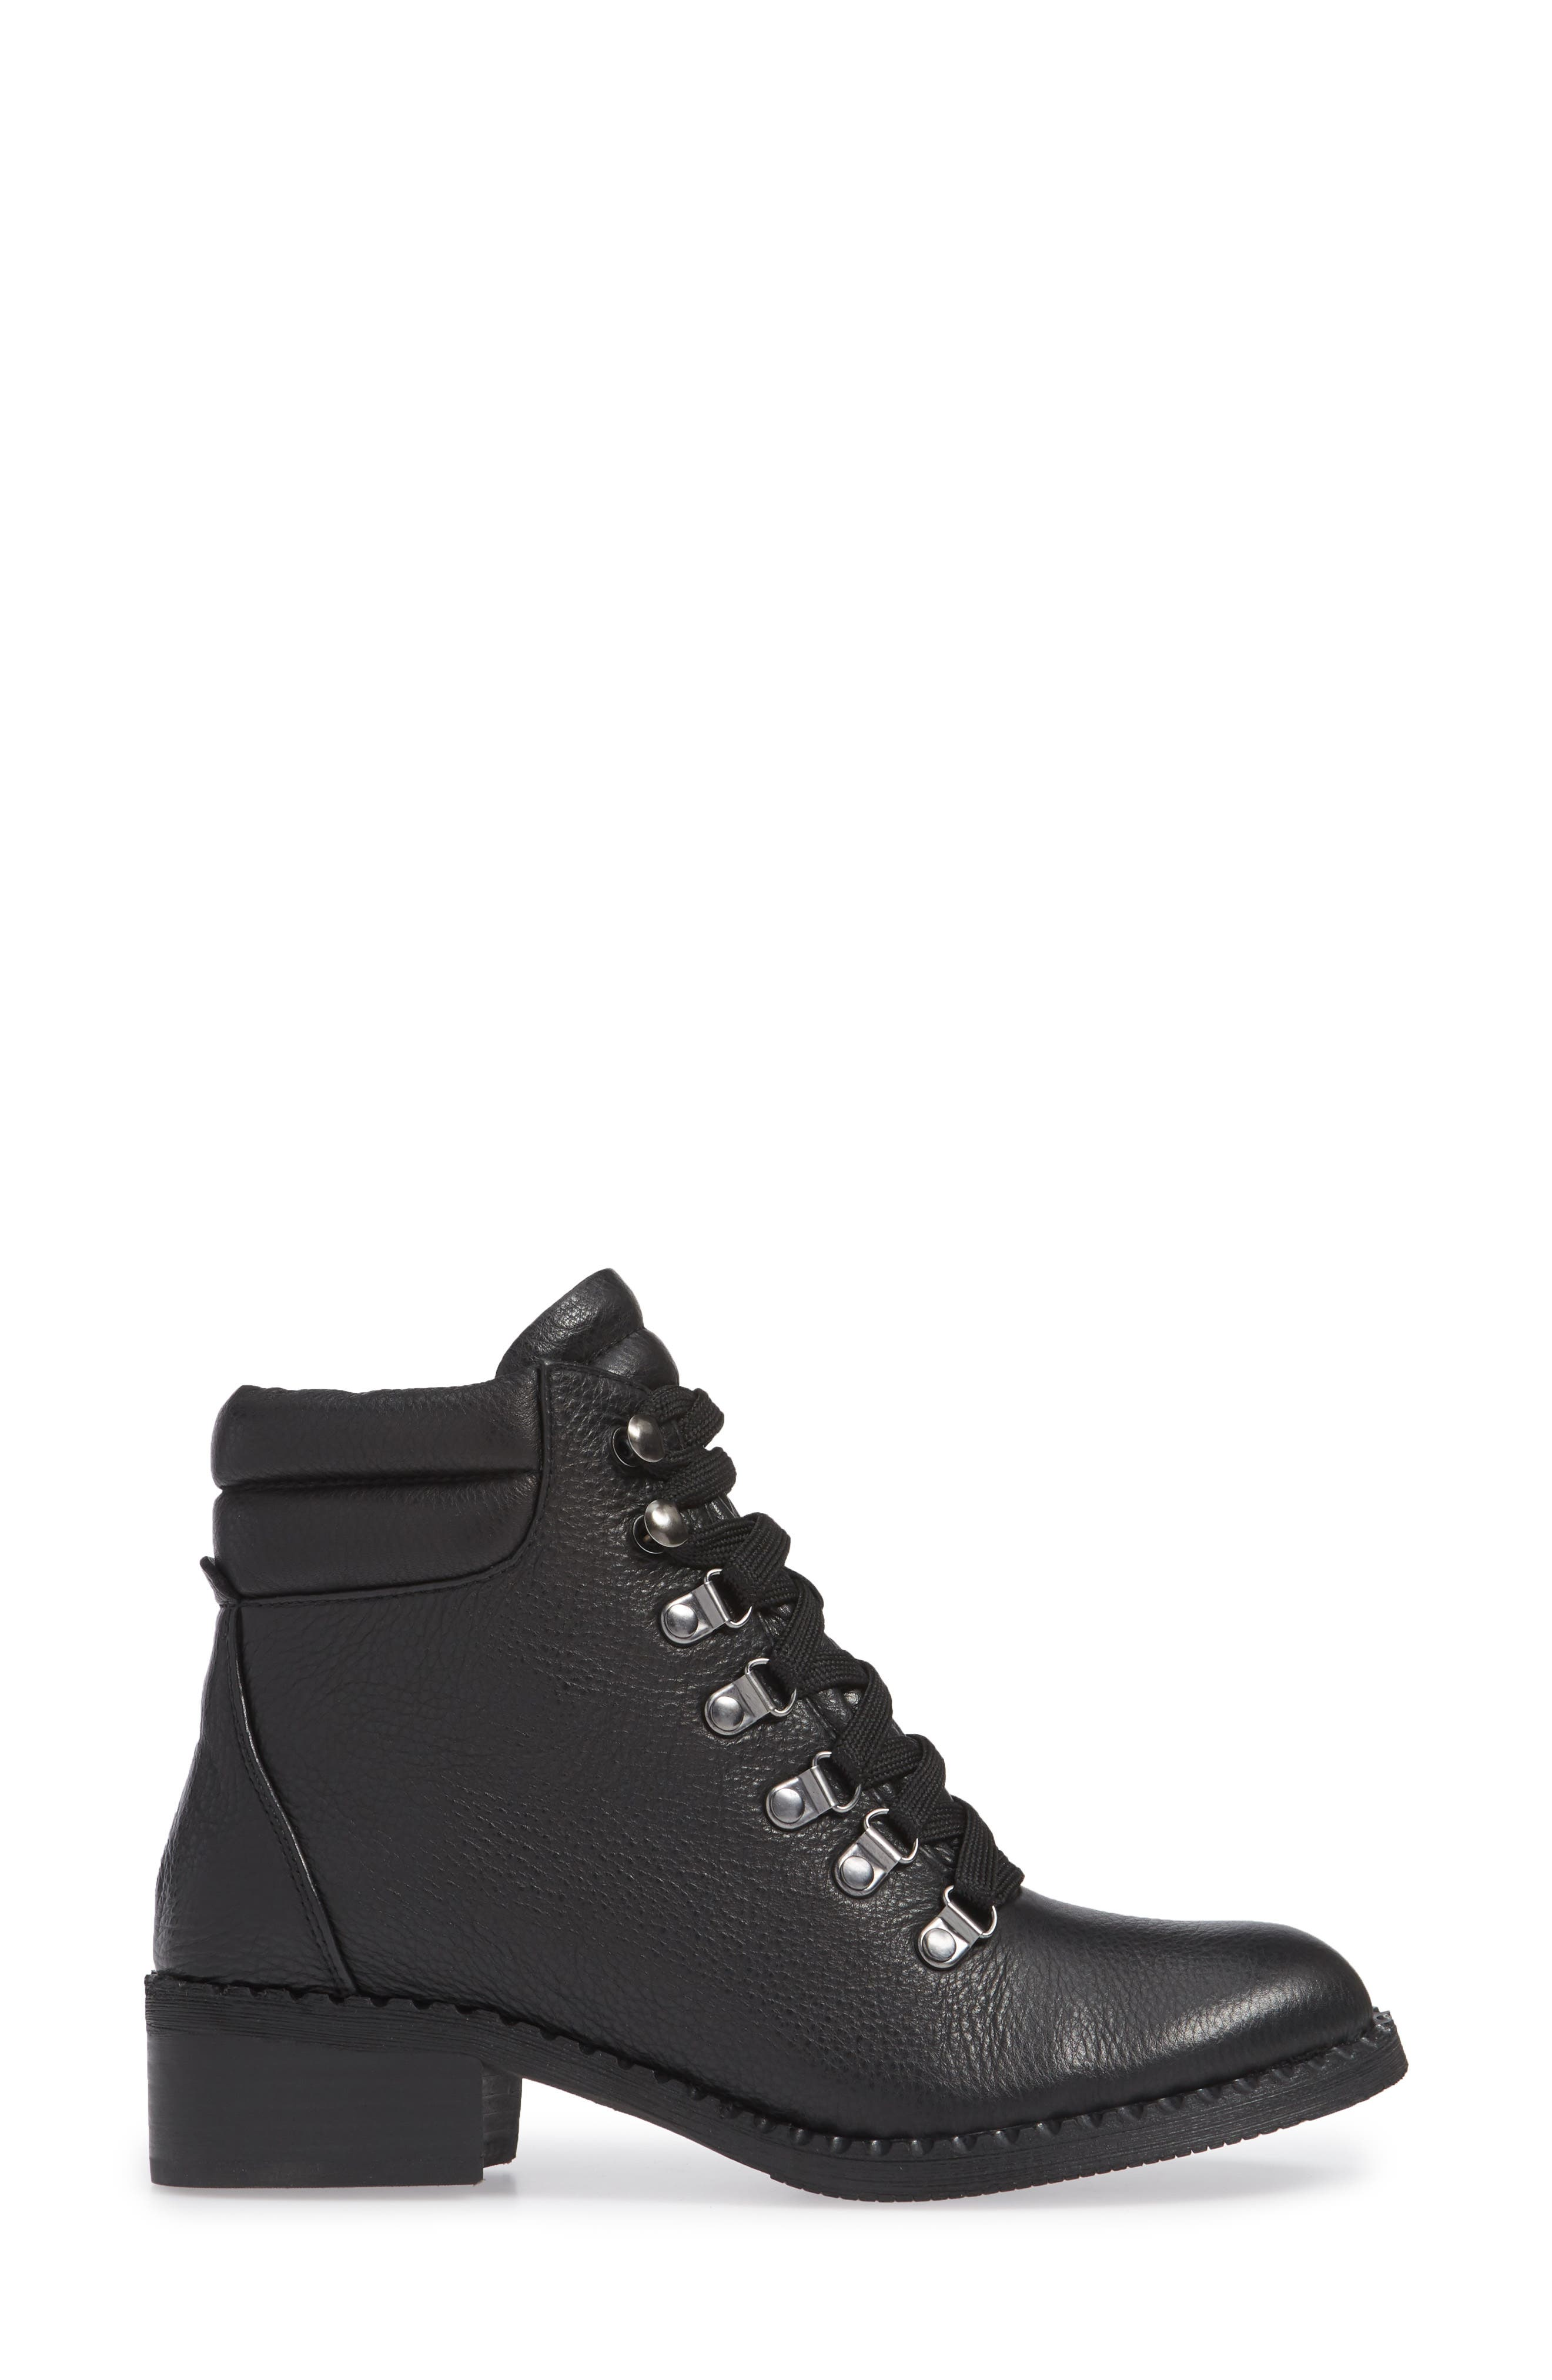 GENTLE SOULS BY KENNETH COLE, Brooklyn Combat Boot, Alternate thumbnail 3, color, BLACK LEATHER